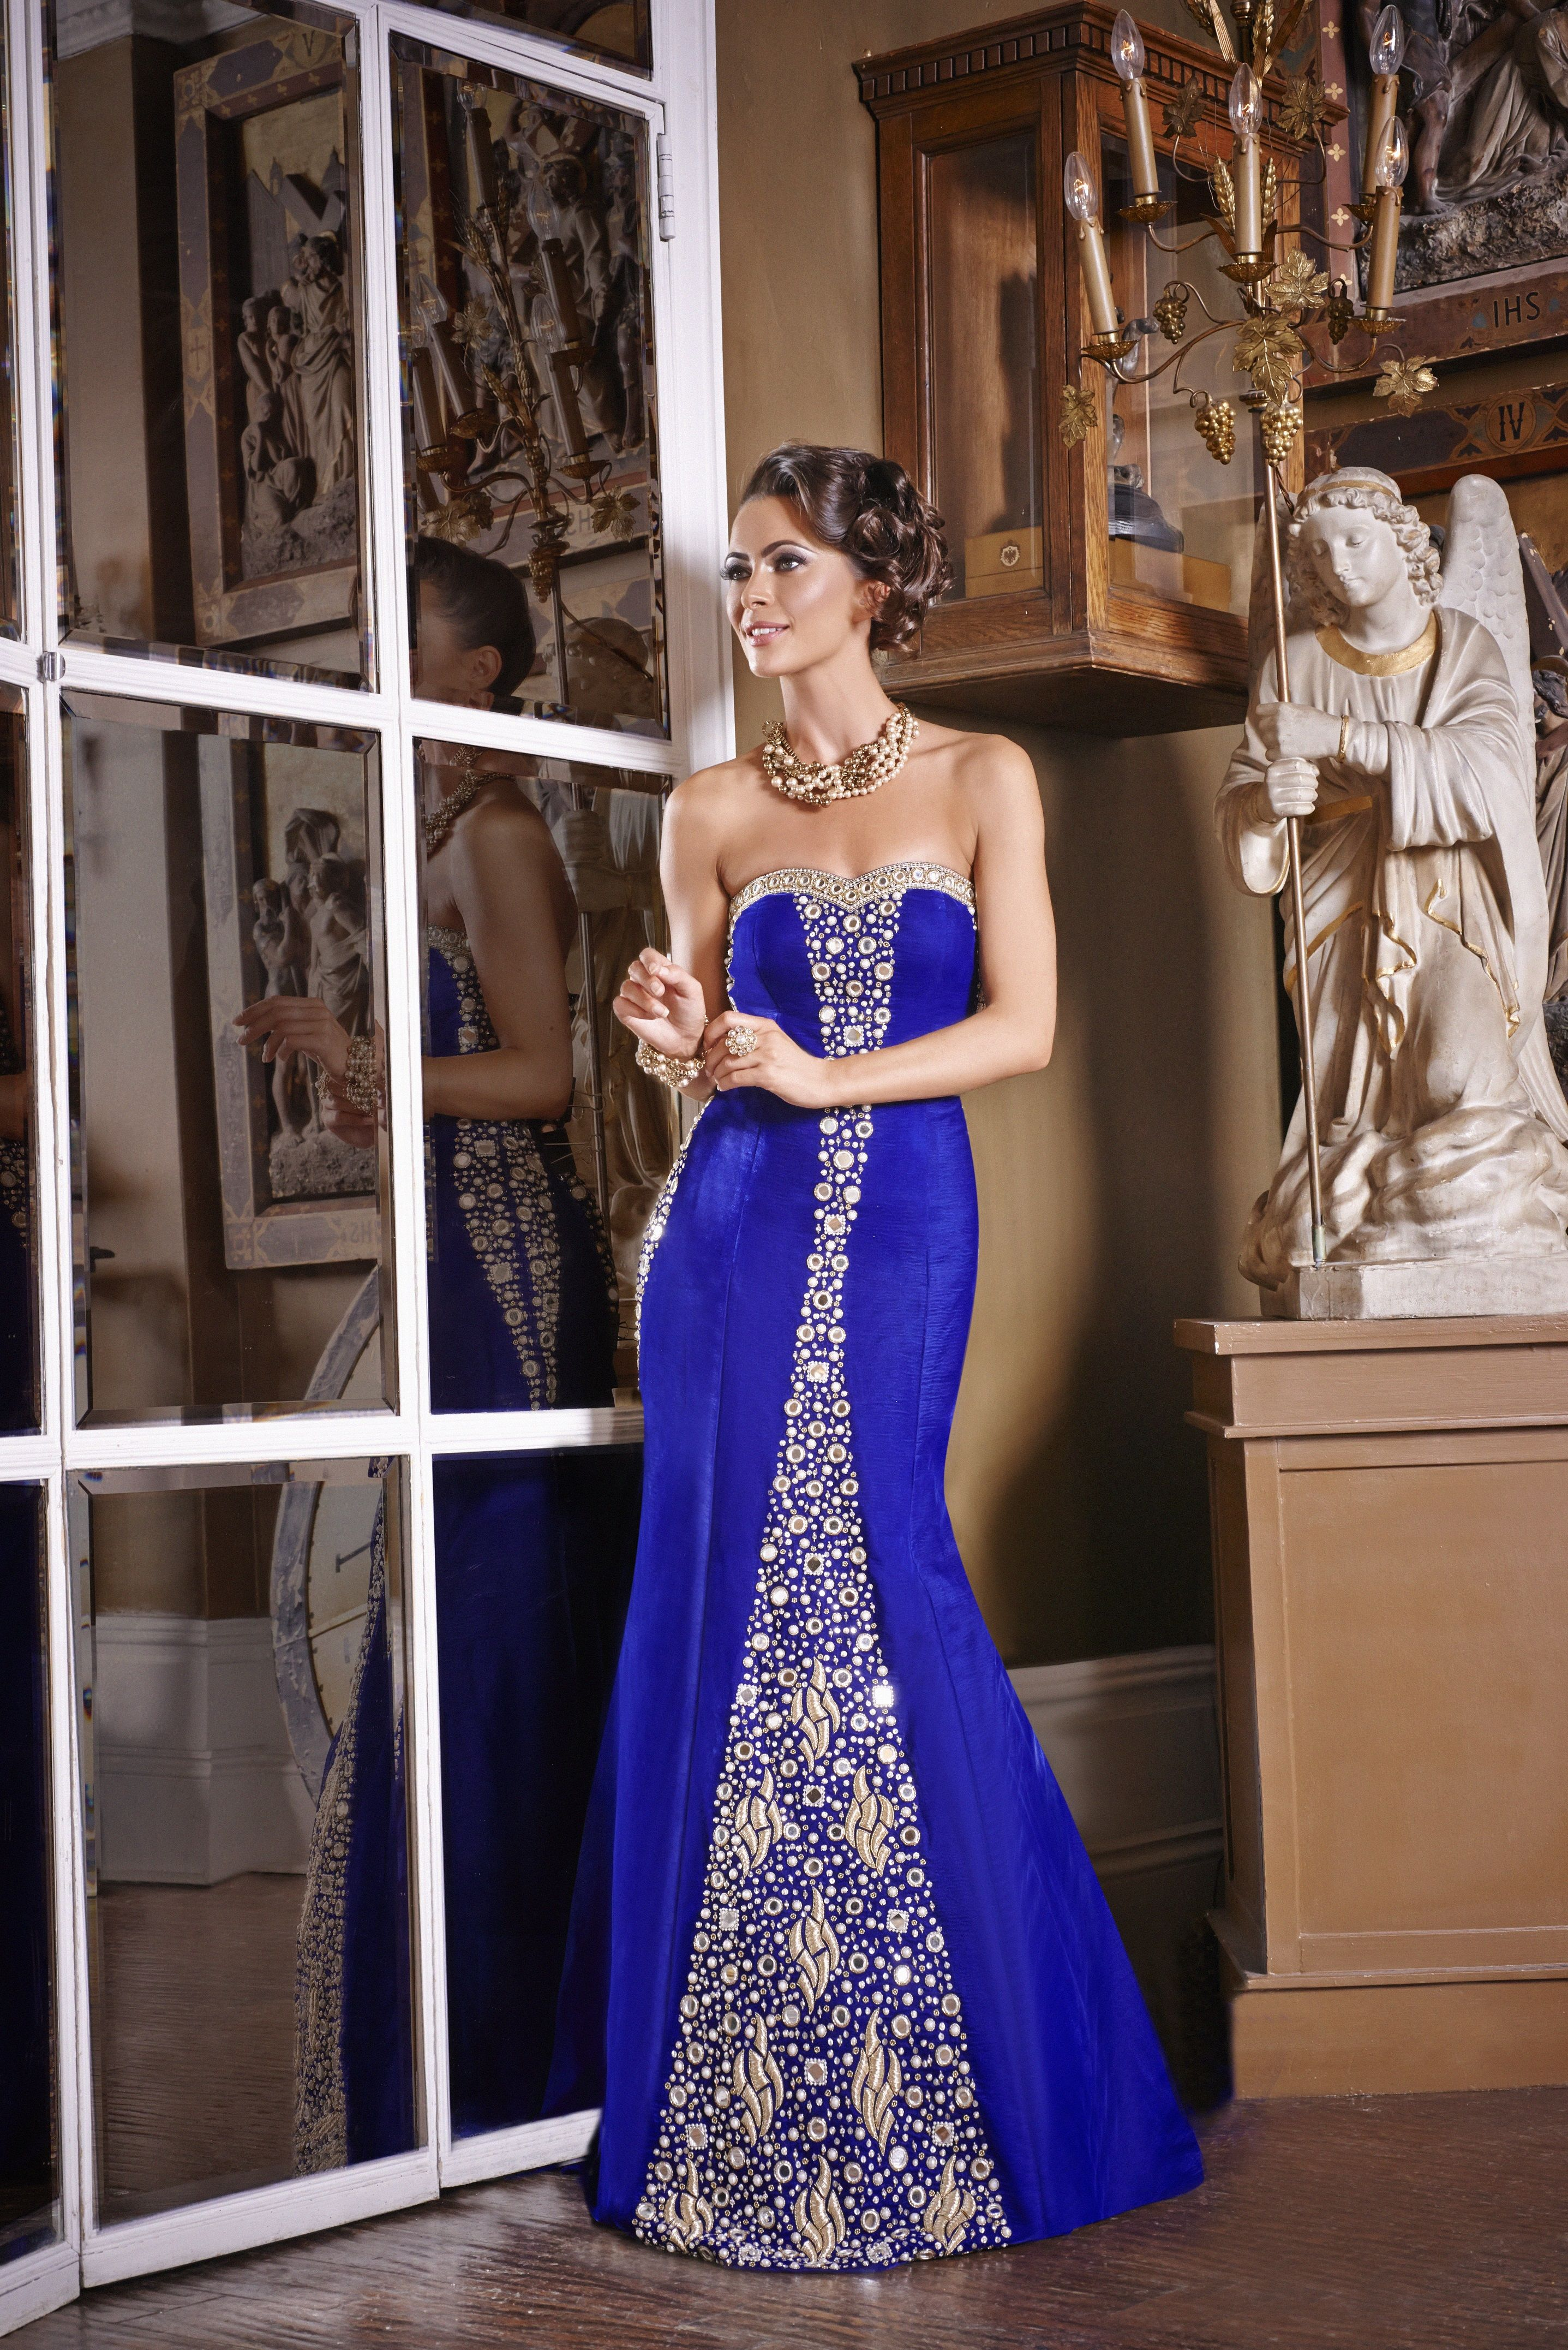 Wf13 Luxurious Royal Blue Velvet Vintage Reception Gown Perfect For A Fusion Wedding With Mirror Hand Embroidery